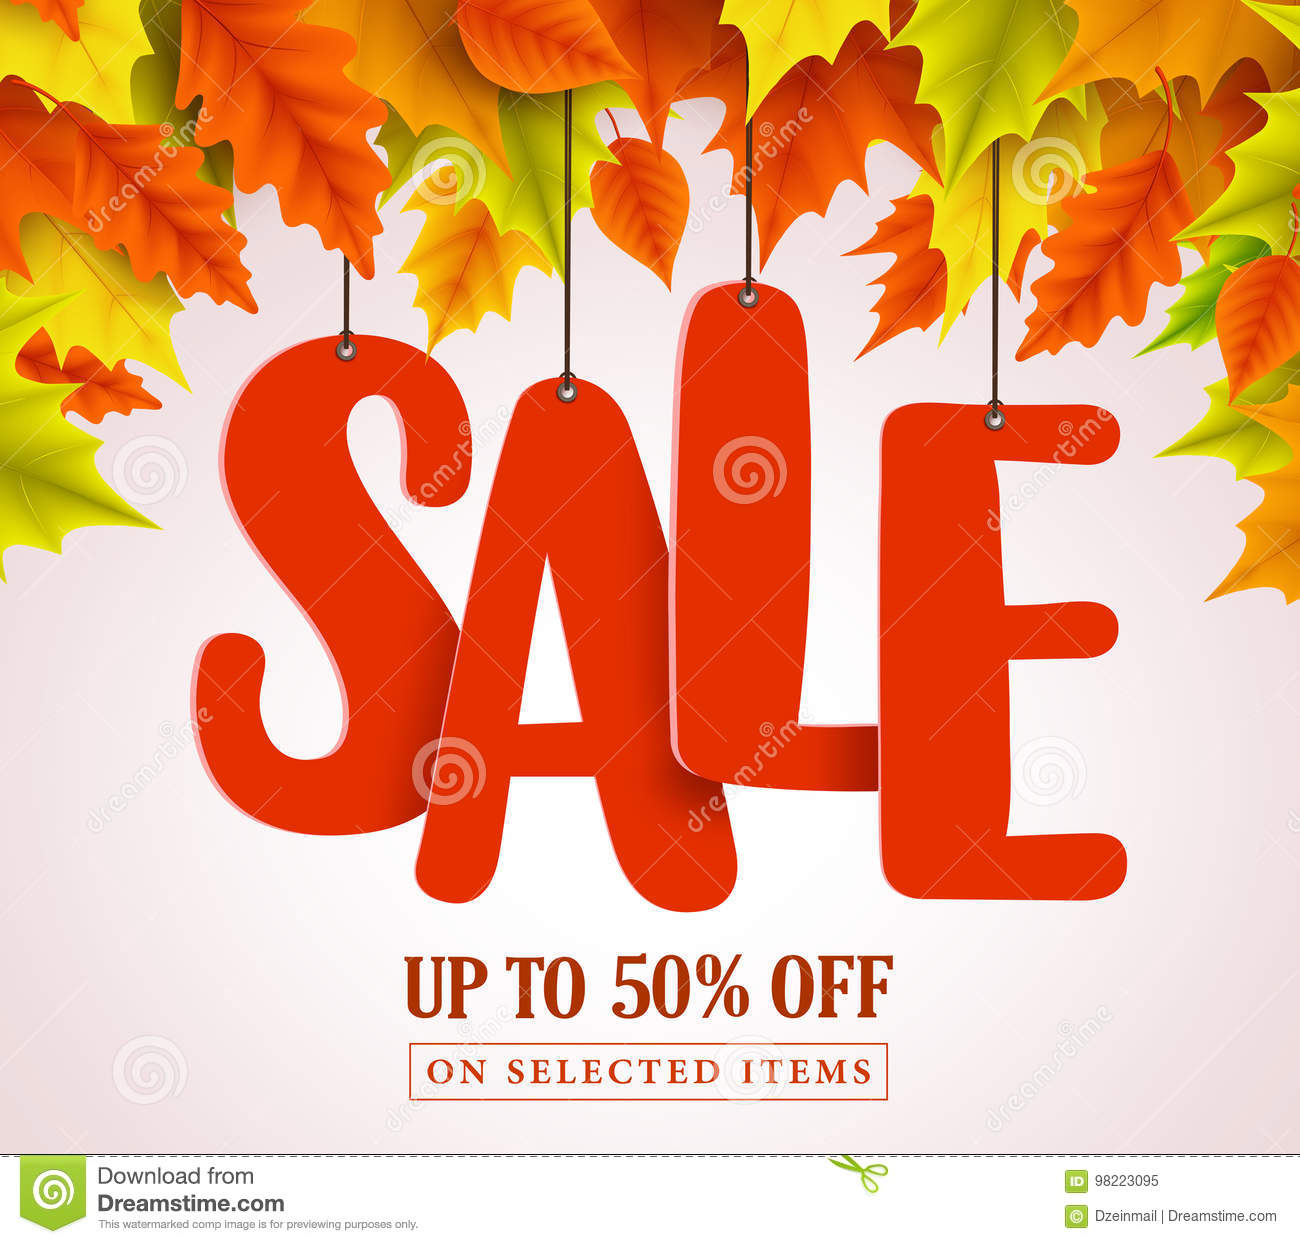 Autumn sale vector design with red sale text hanging in colorful maple leaves